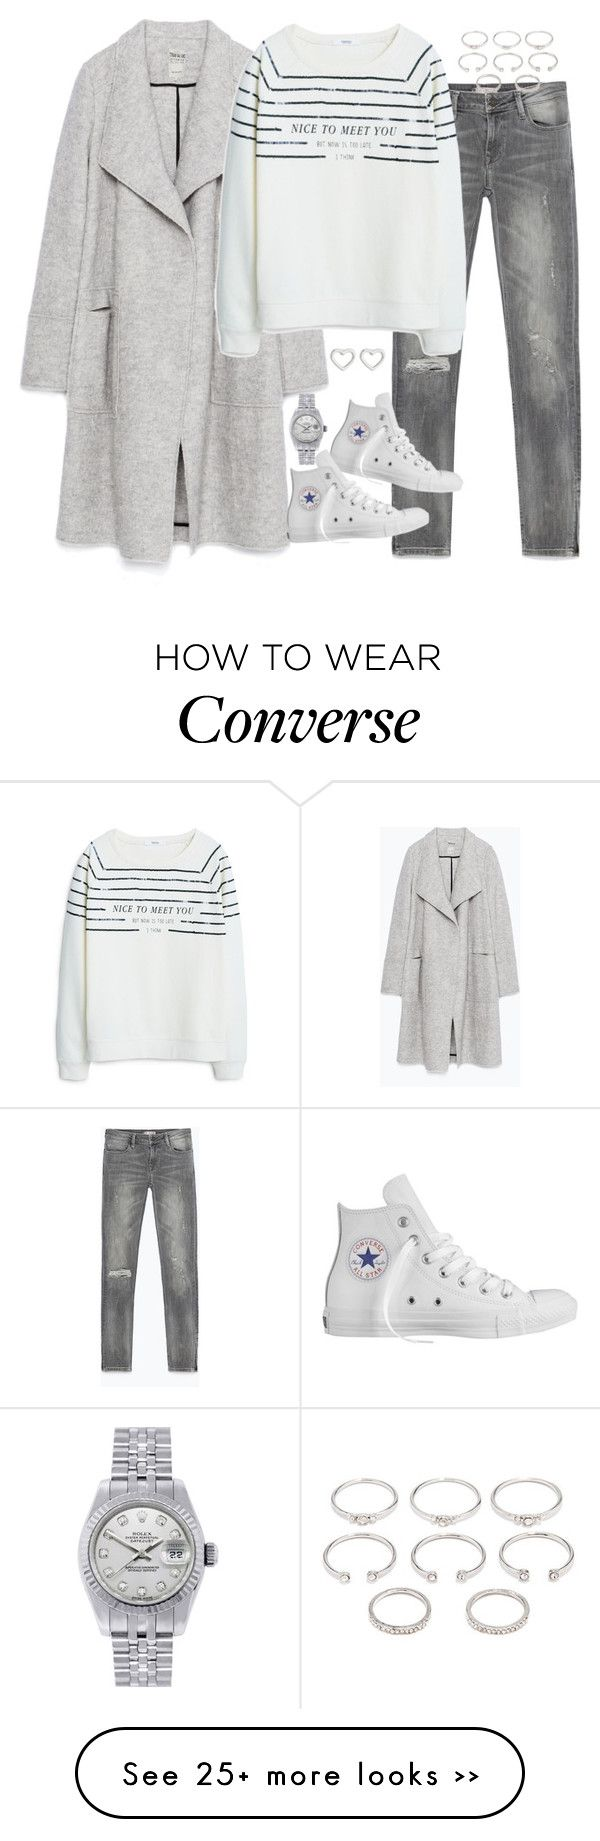 """Geen titel #3170"" by chiara-rinaldi on Polyvore featuring Zara, MANGO, Converse, Forever 21, Rolex and Marc by Marc Jacobs"